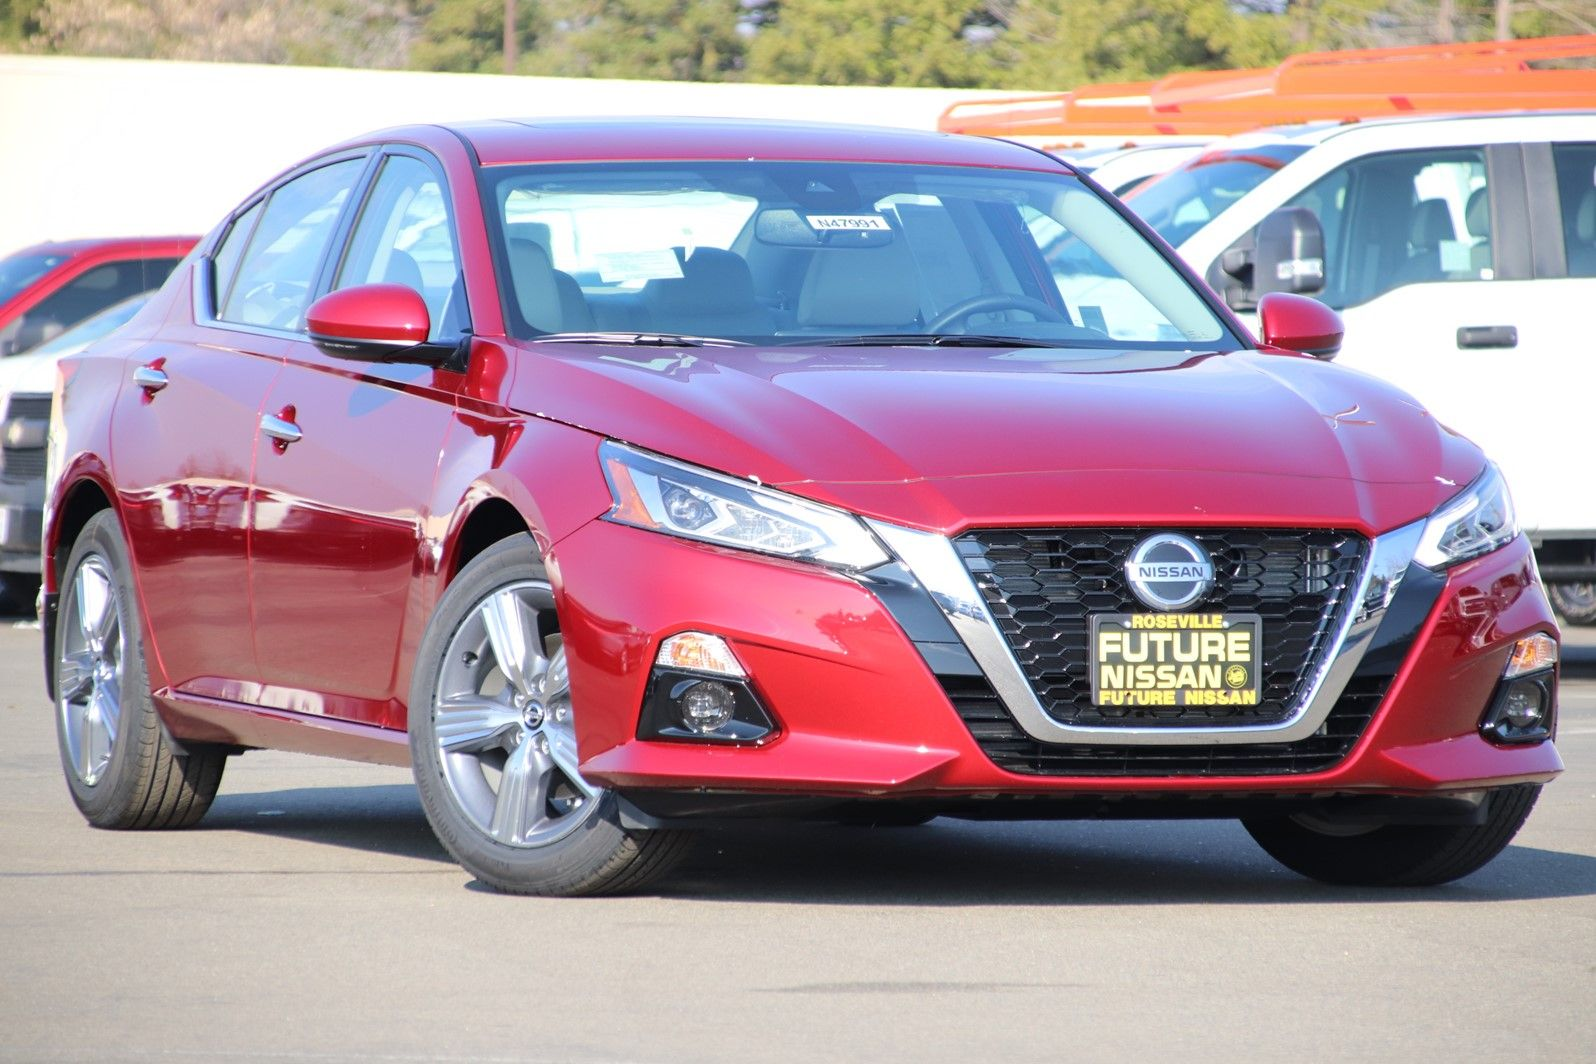 Elk Grove Automall >> New 2019 Nissan Altima If Interested Please Visit Our